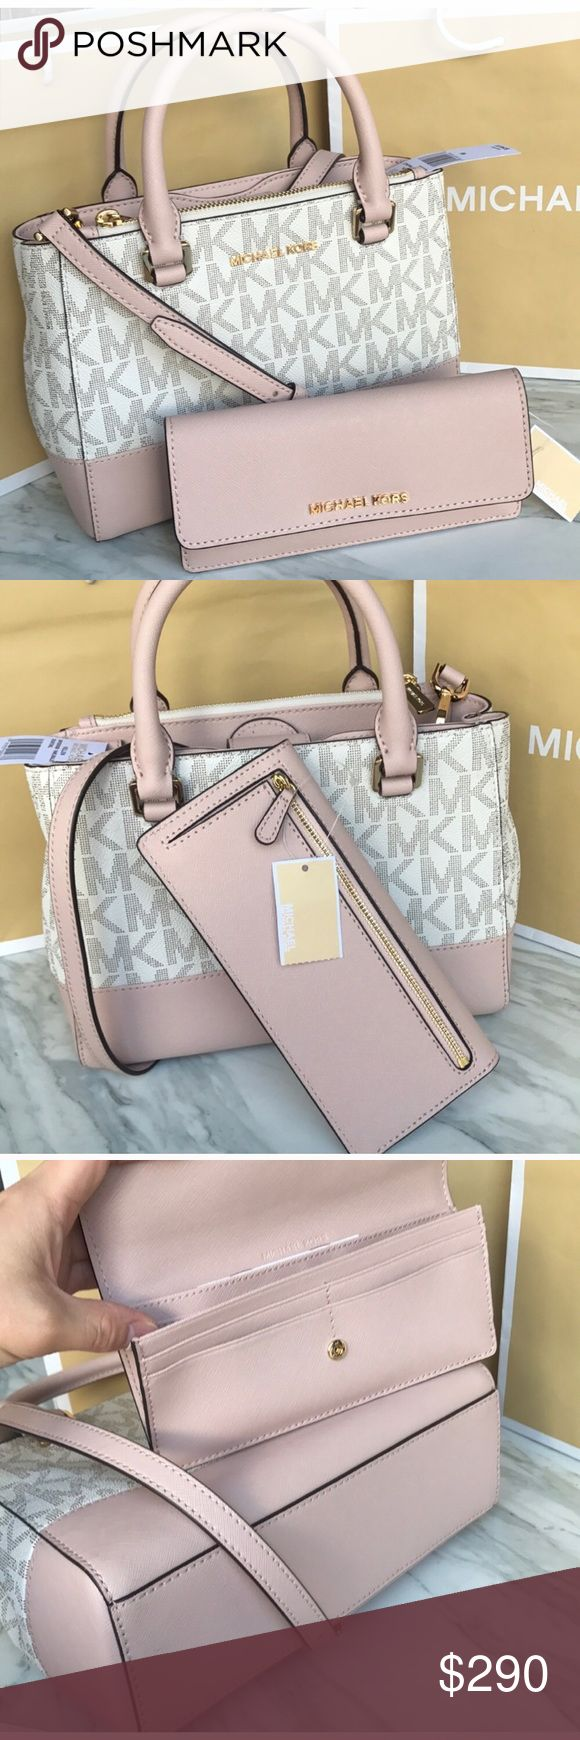 🎀🎉mk Satchel set🎉crossbody/Kellen bag Both bag and wallet authentic brand new with tags. Vanilla /ballet color. Gold hard wear both. Purse strap removable can wear as Satchel/crossbody. Michael Kors Bags Satchels